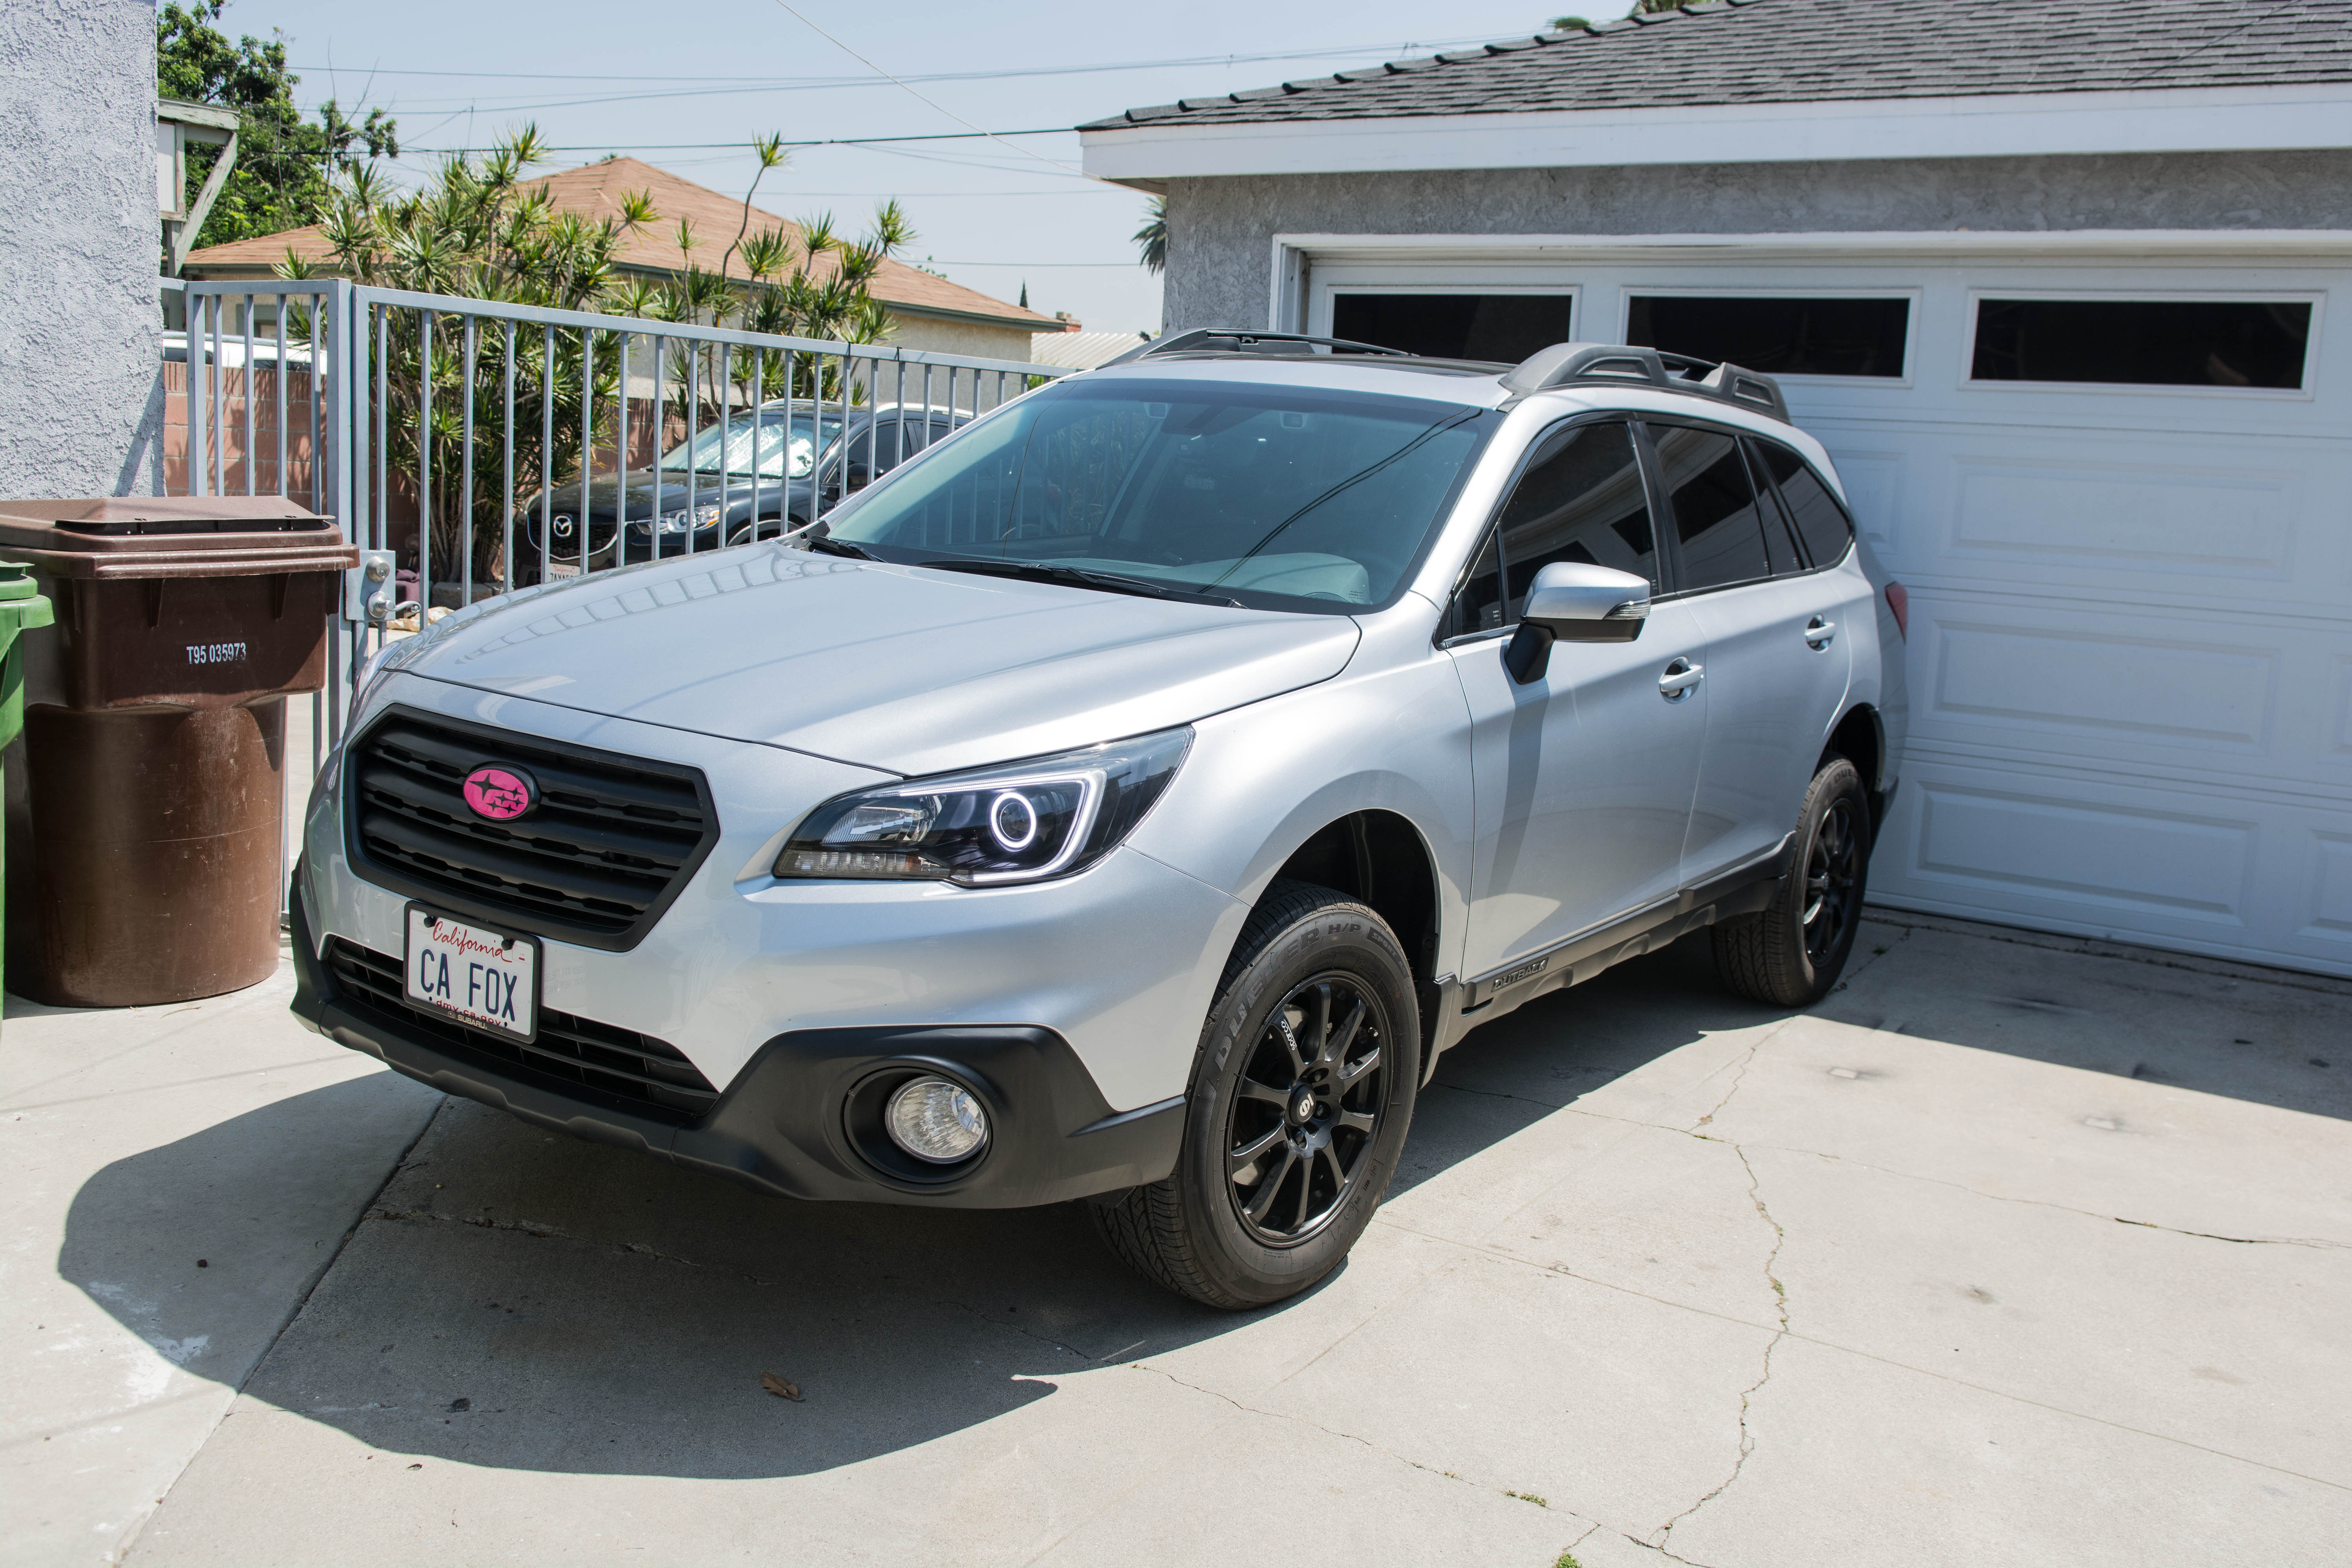 2015 Outback lift kit questions | Page 2 | Subaru Outback Forums